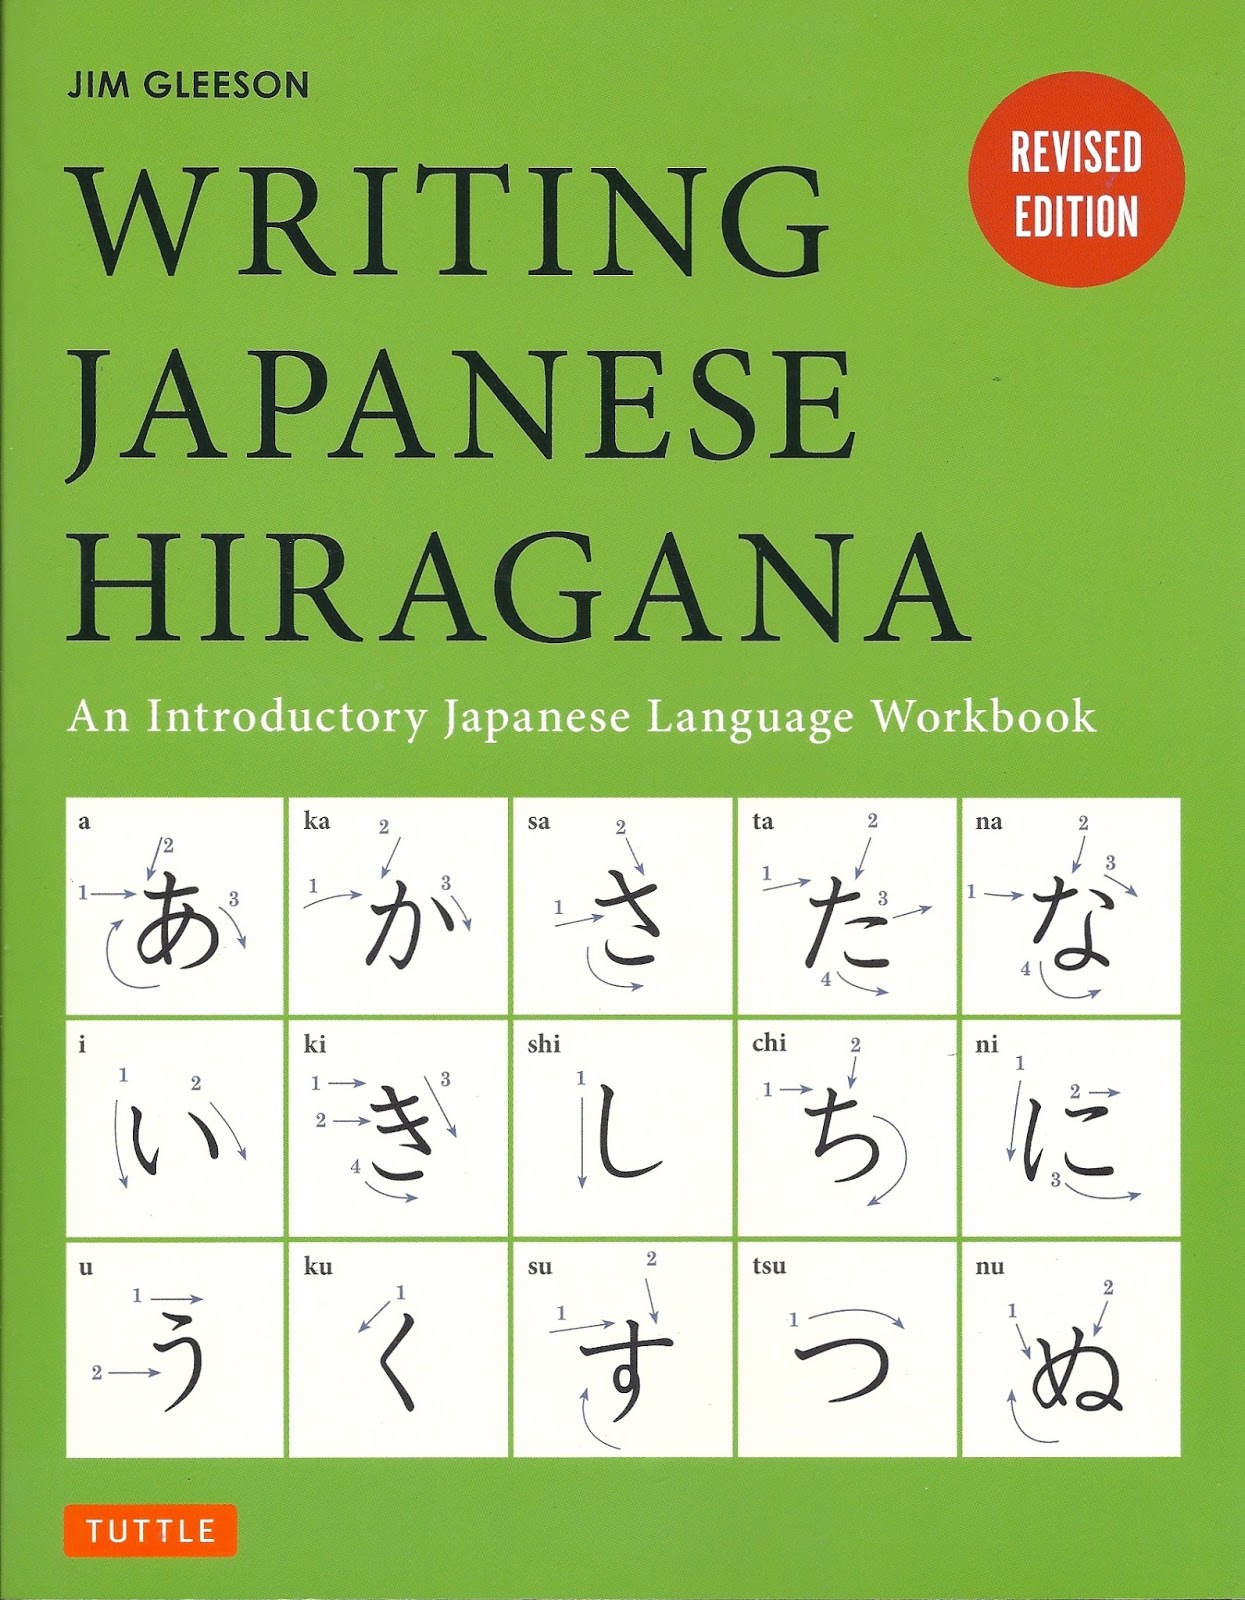 Japan Its A Wonderful Rife Writing Japanese Hiragana A Book Review